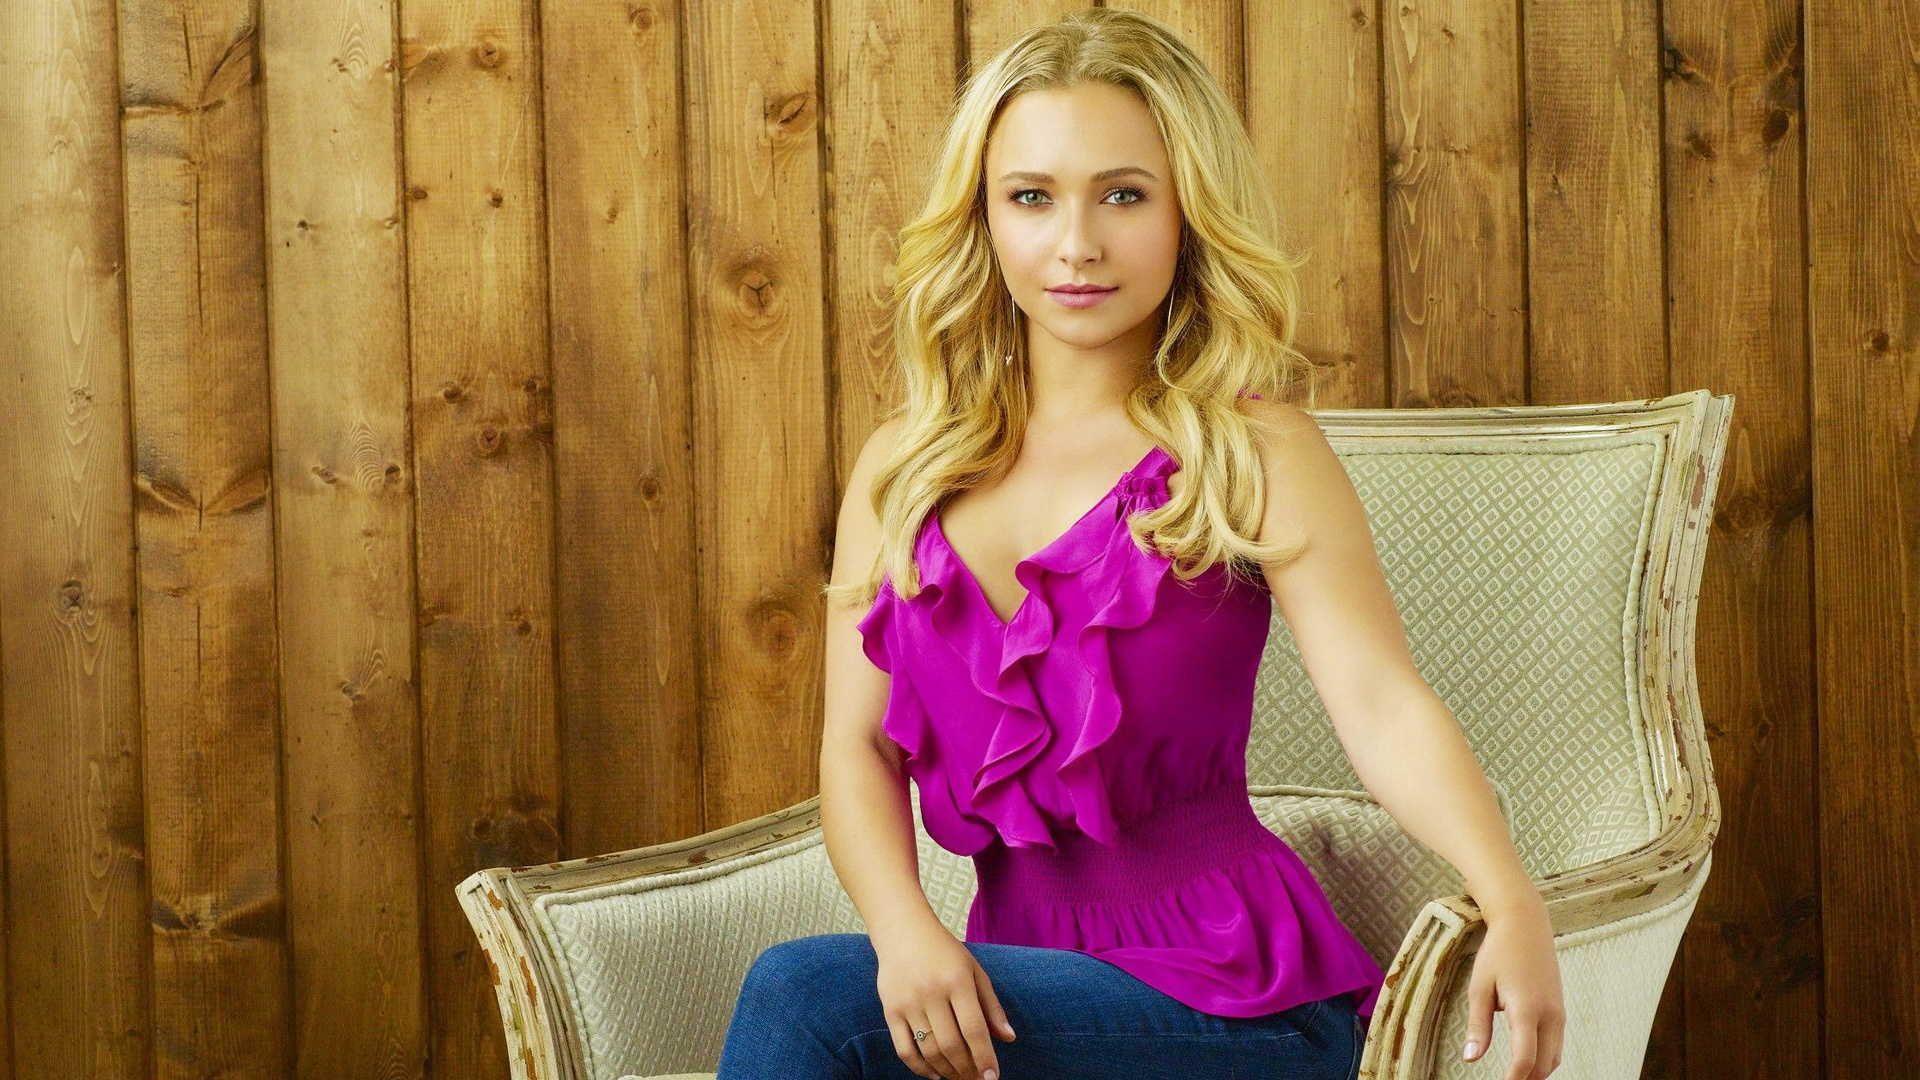 haydenpanettiere pictures hd A18